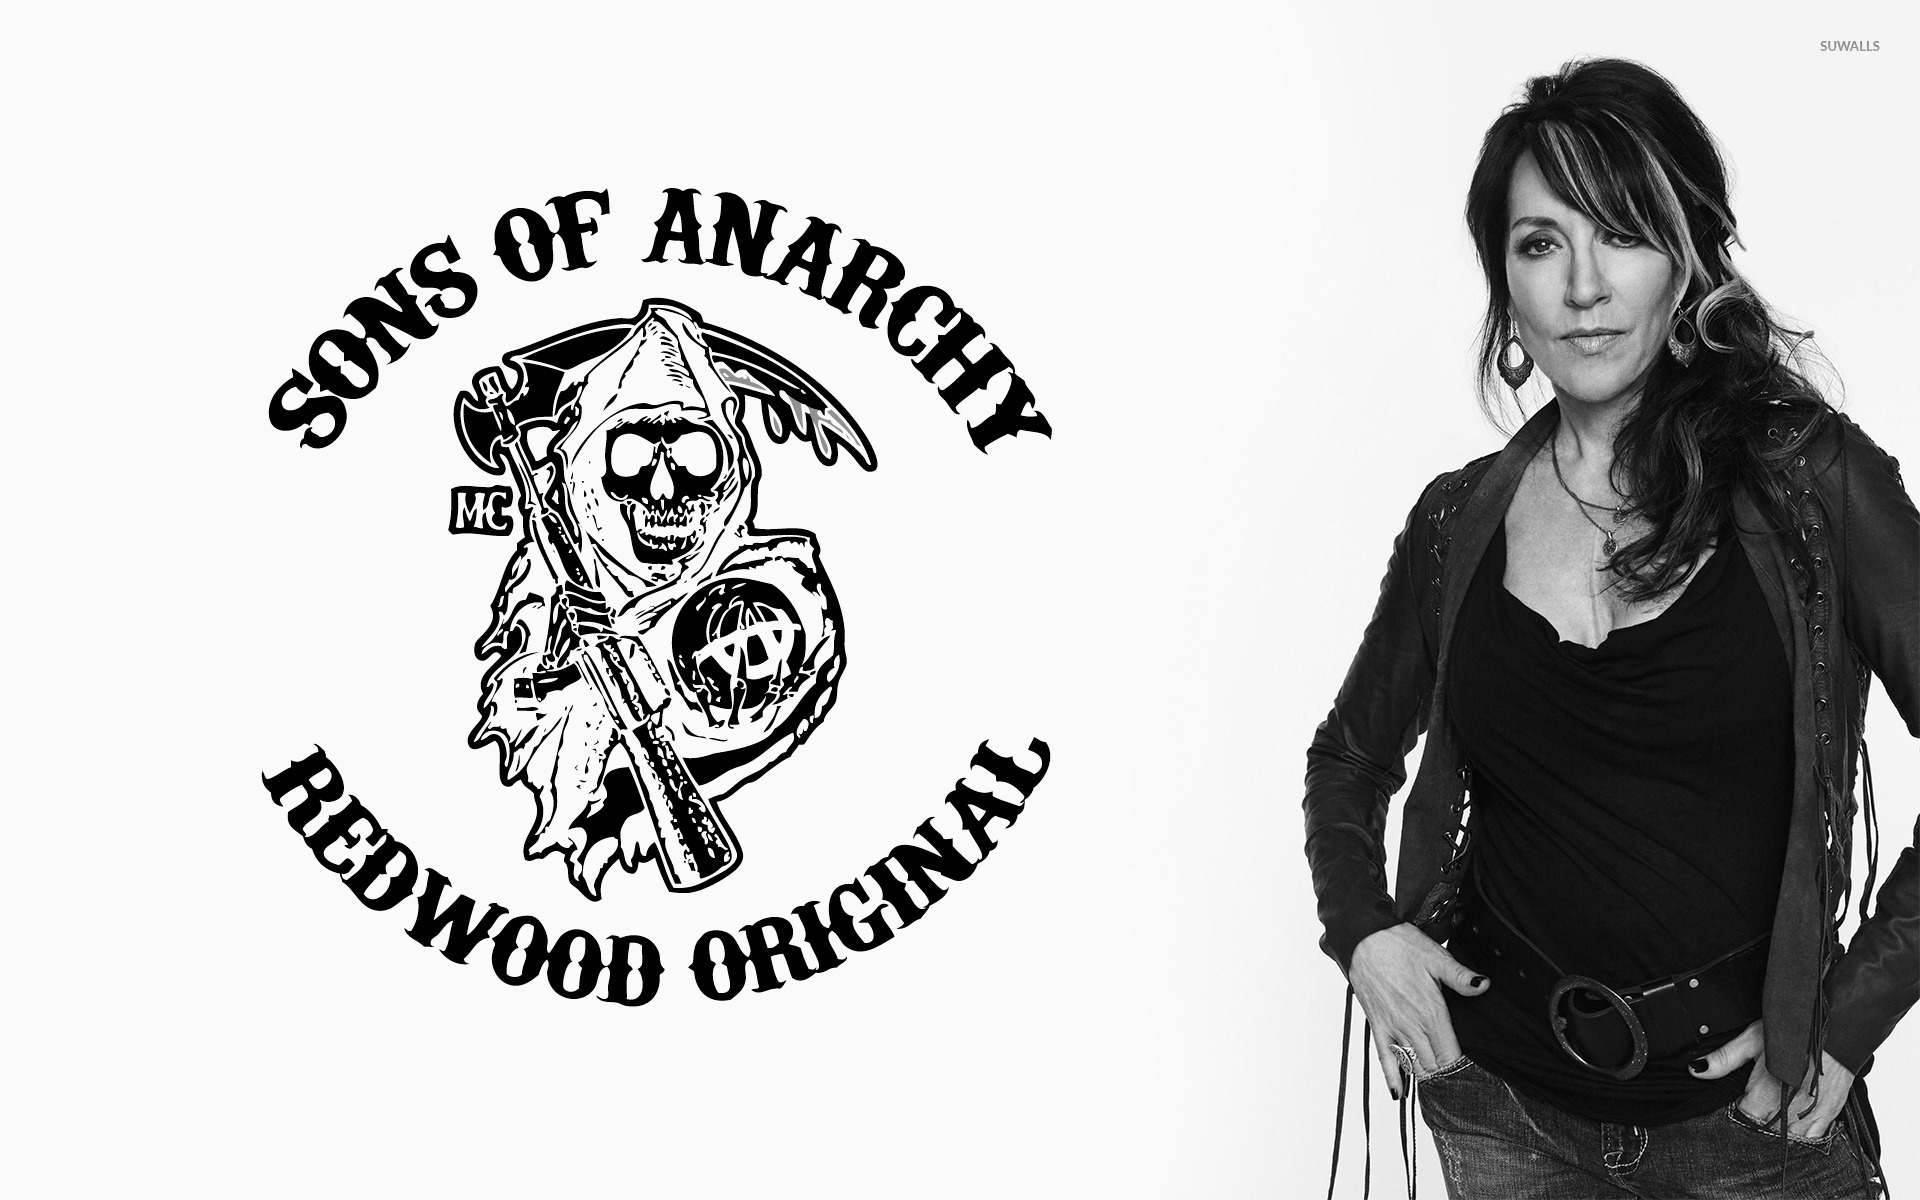 Gemma Teller Morrow Sons Of Anarchy Wallpaper Tv Show